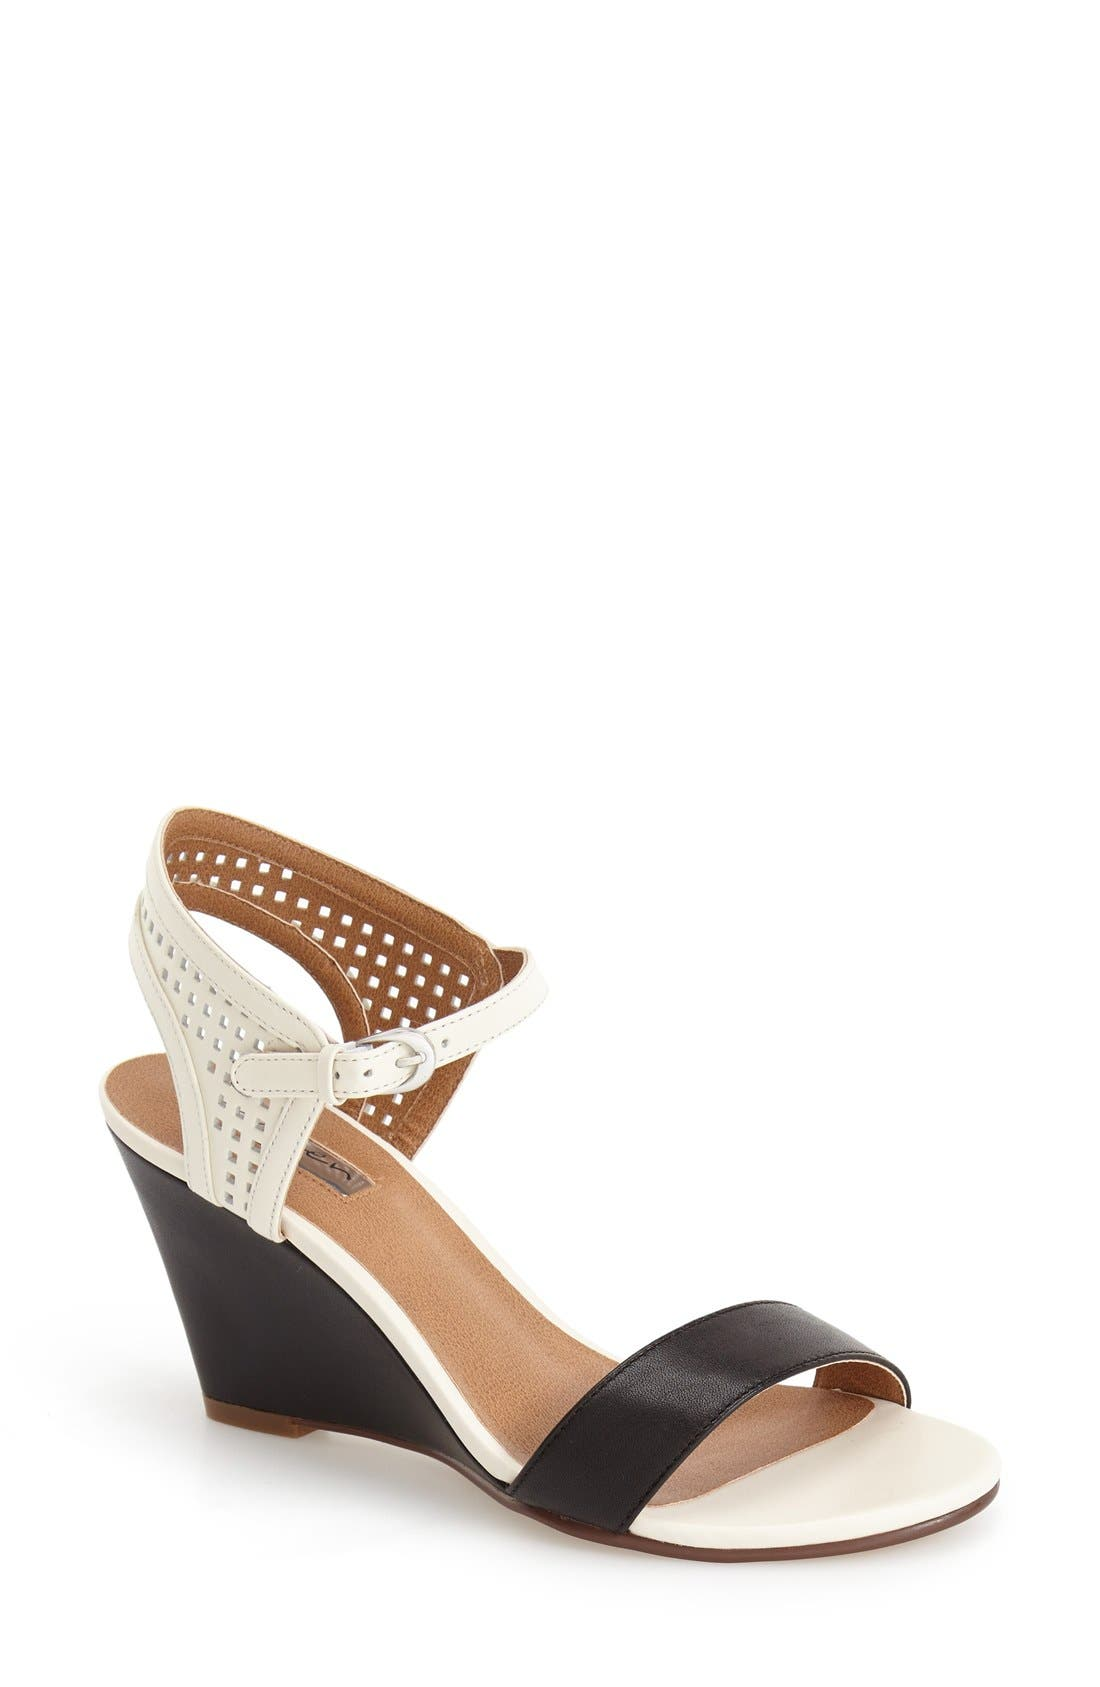 Alternate Image 1 Selected - Halogen 'Helen' Perforated Leather Ankle Strap Wedge Sandal (Women)